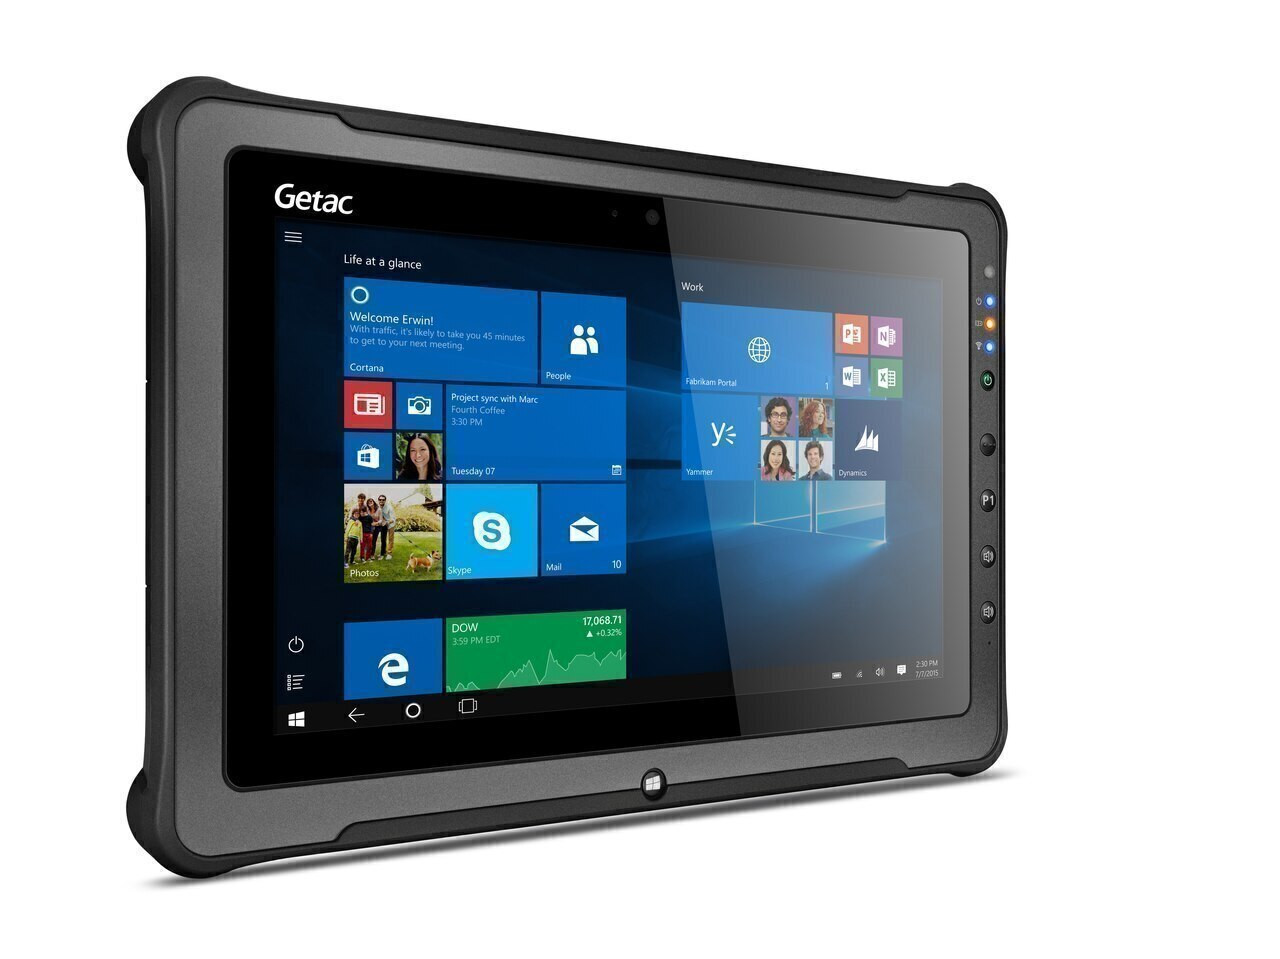 "Getac F110 G4 Basic,Intel Core i5-7200U Processor 2.5GHz,11.6"" With Webcam,Microsoft Windows 10 Pro x64 with 16GB RAM,256GB SSD,Sunlight Readable (Full HD LCD+ Touchscreen) ,AC Adapter + US Power Cord,Rear Camera,WiFi + BT,Barcode Reader"